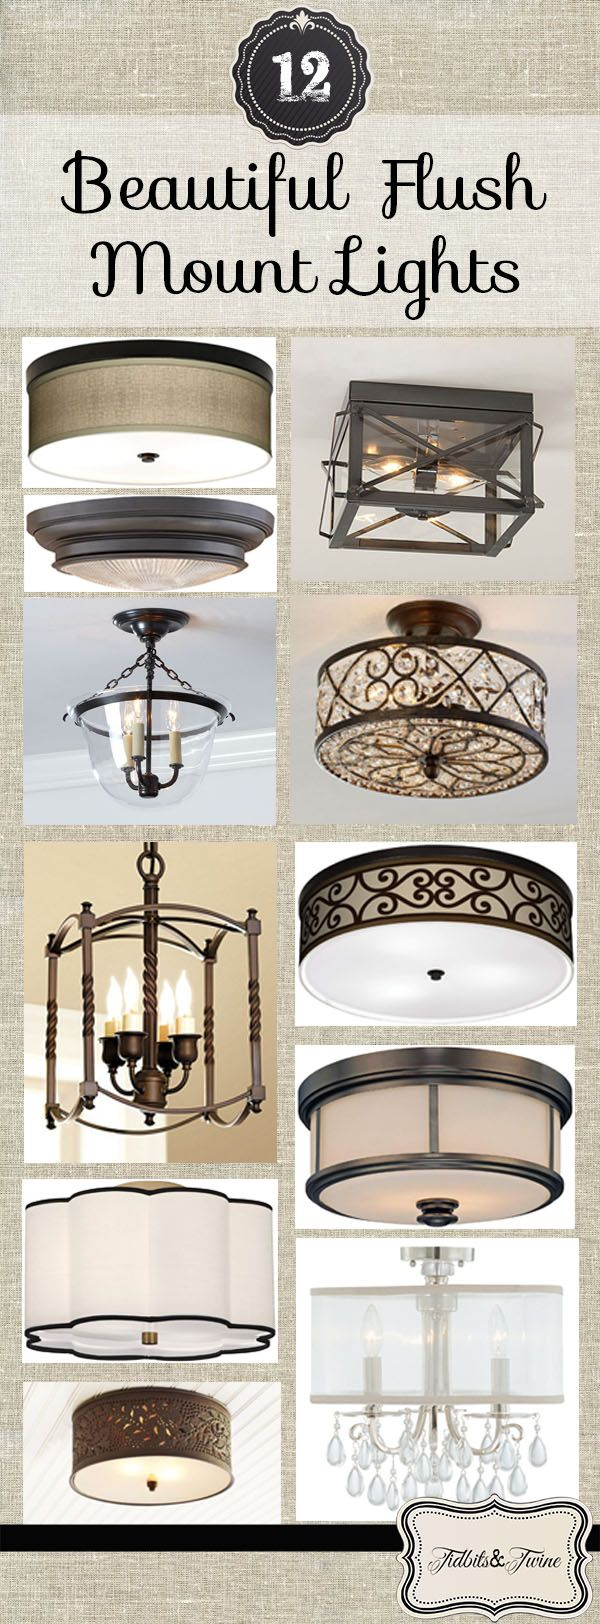 flush mount lighting flush mount kitchen lighting 12 Beautiful Flush Mount Ceiling Lights